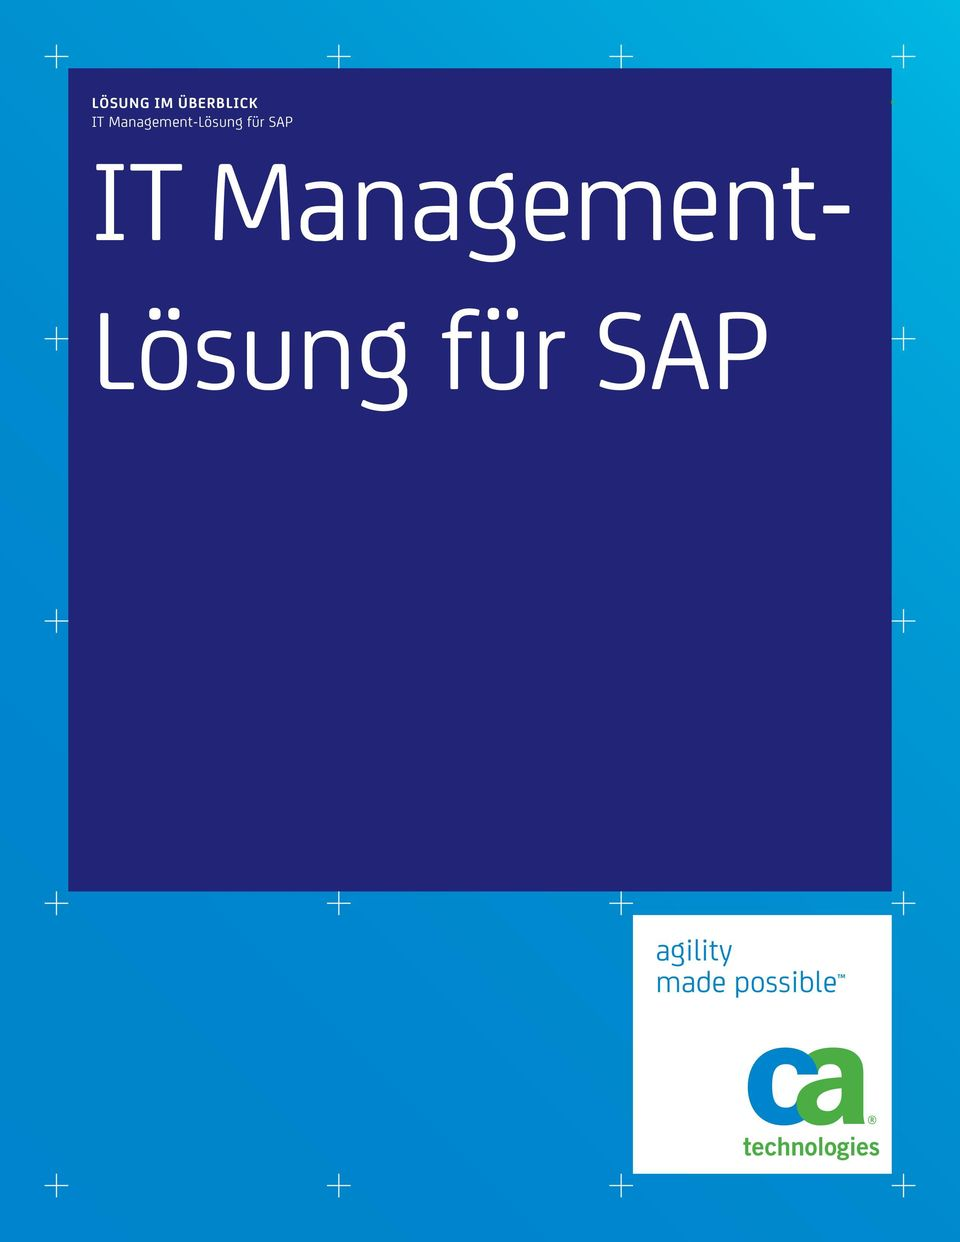 SAP IT Management-